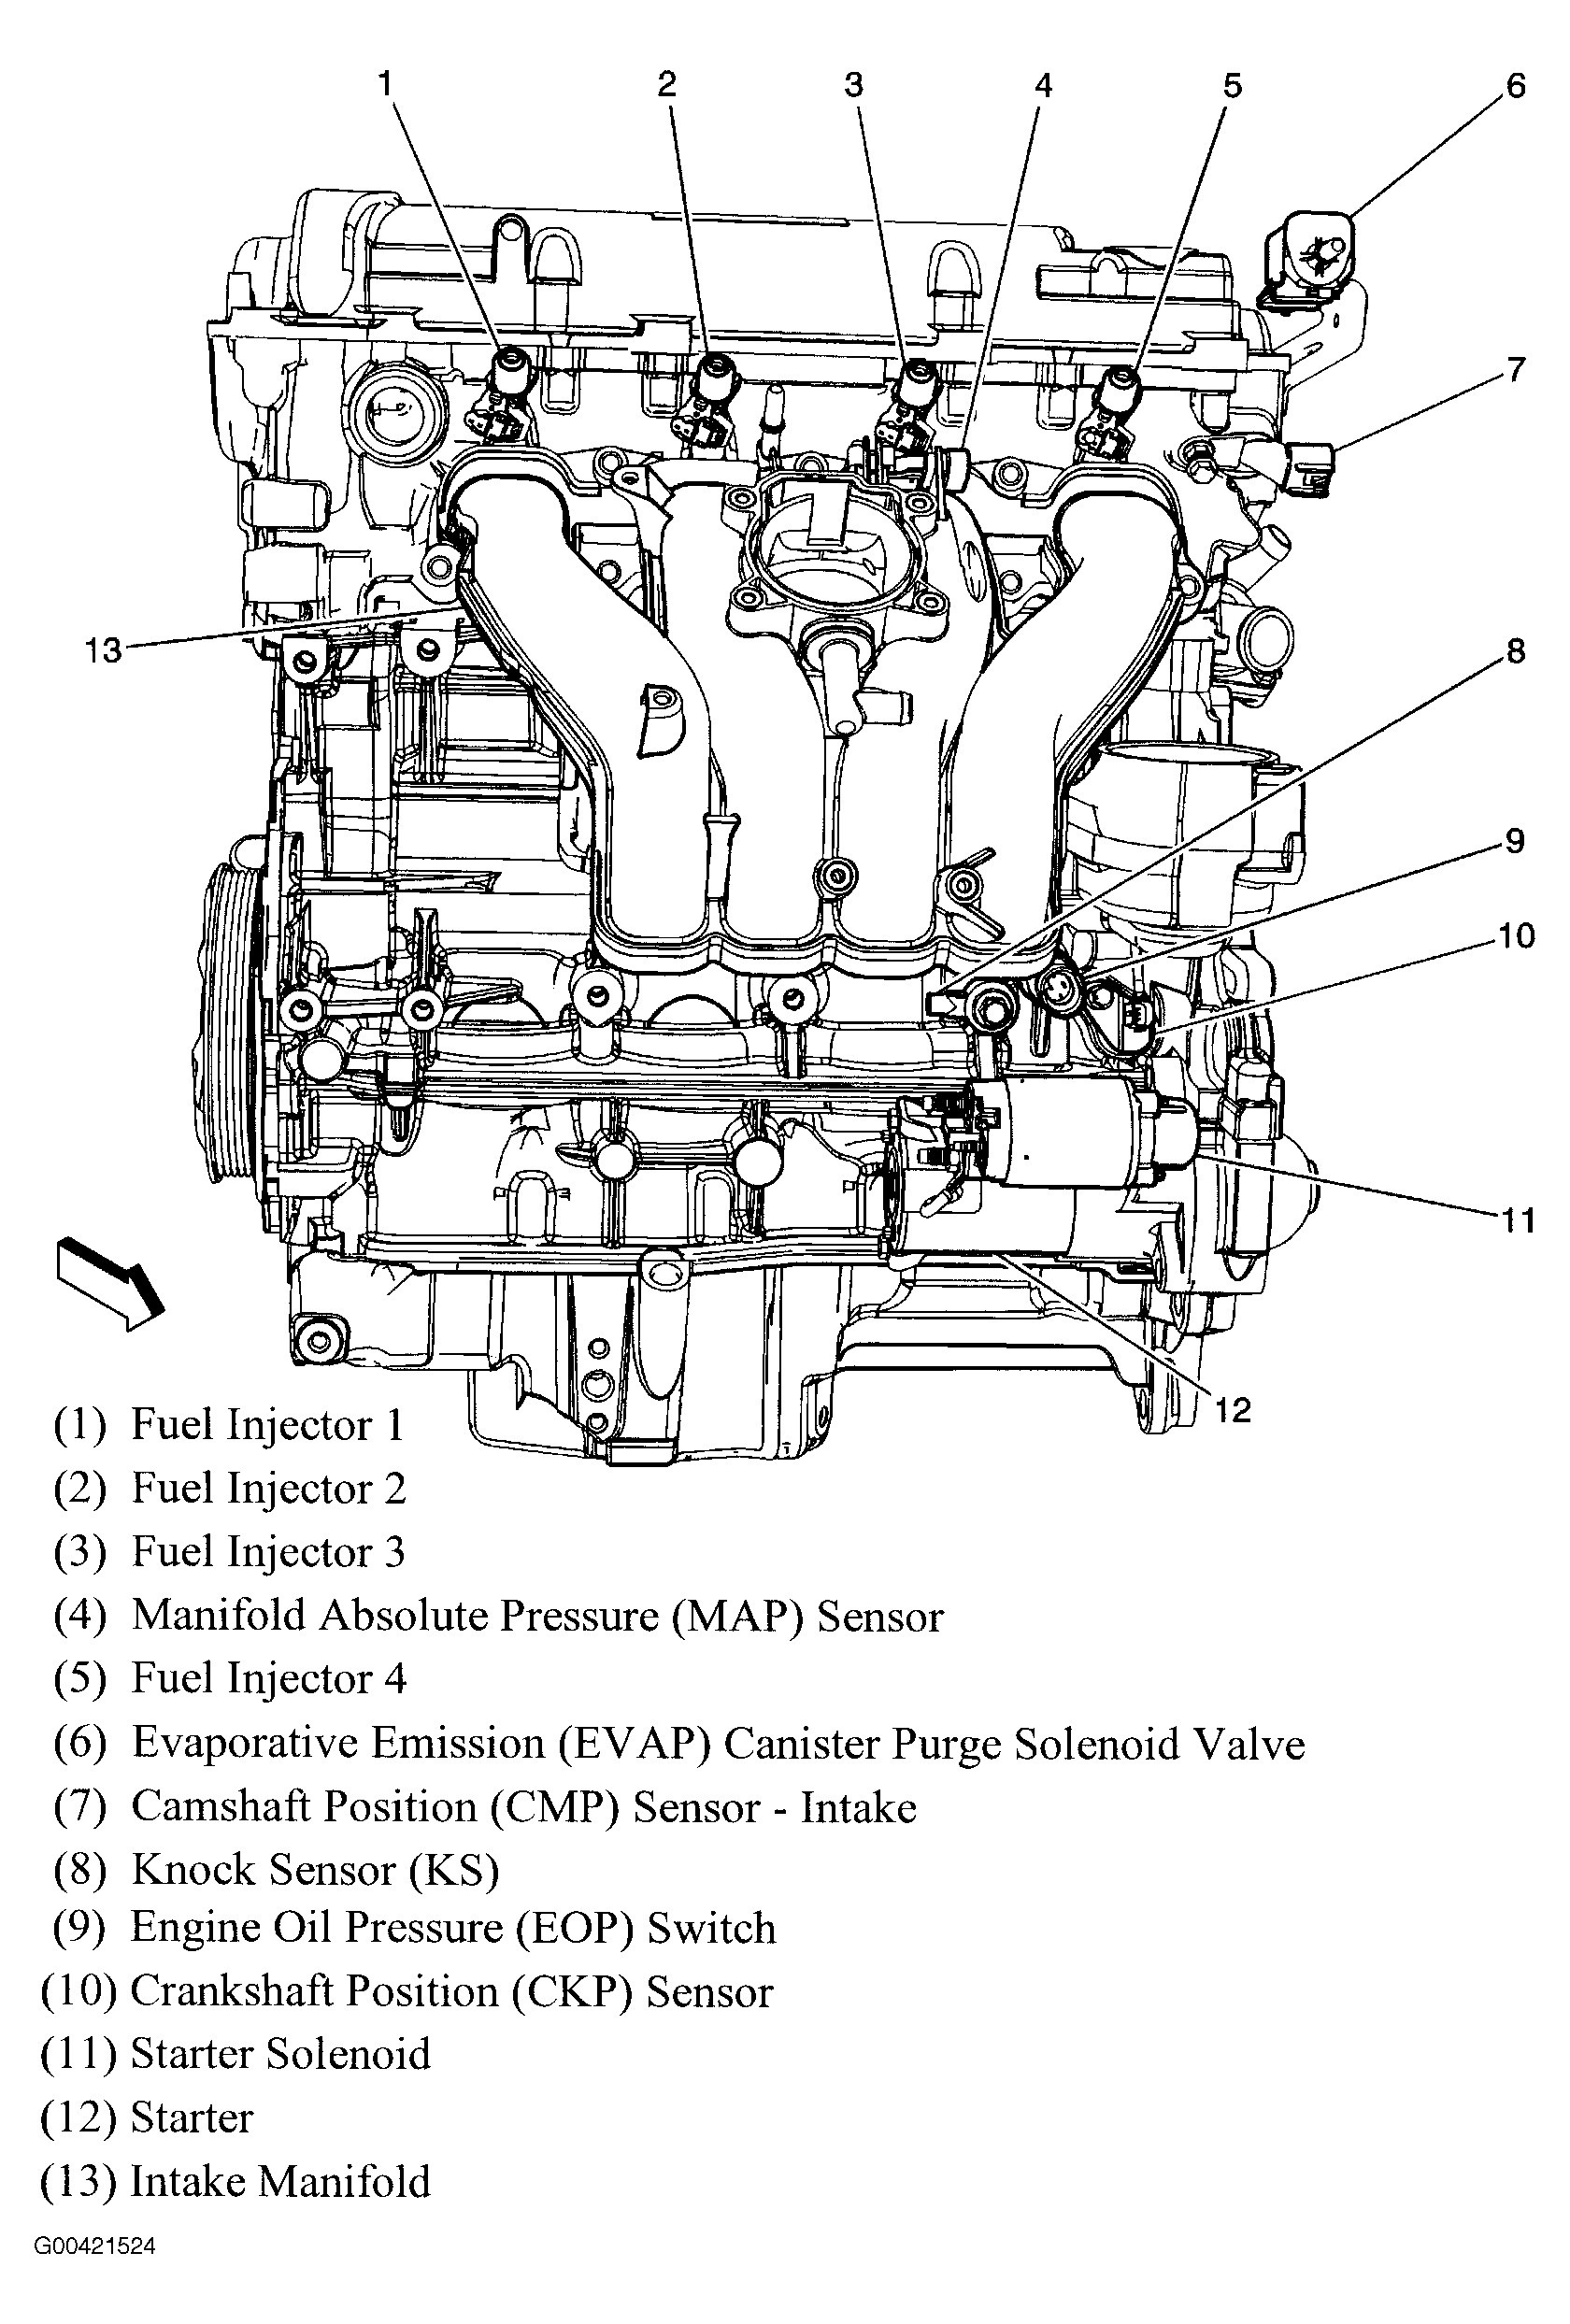 hight resolution of 1999 ford ranger 3 0 engine diagram engine car parts and component 98 jetta vr6 engine diagram engine car parts and component diagram